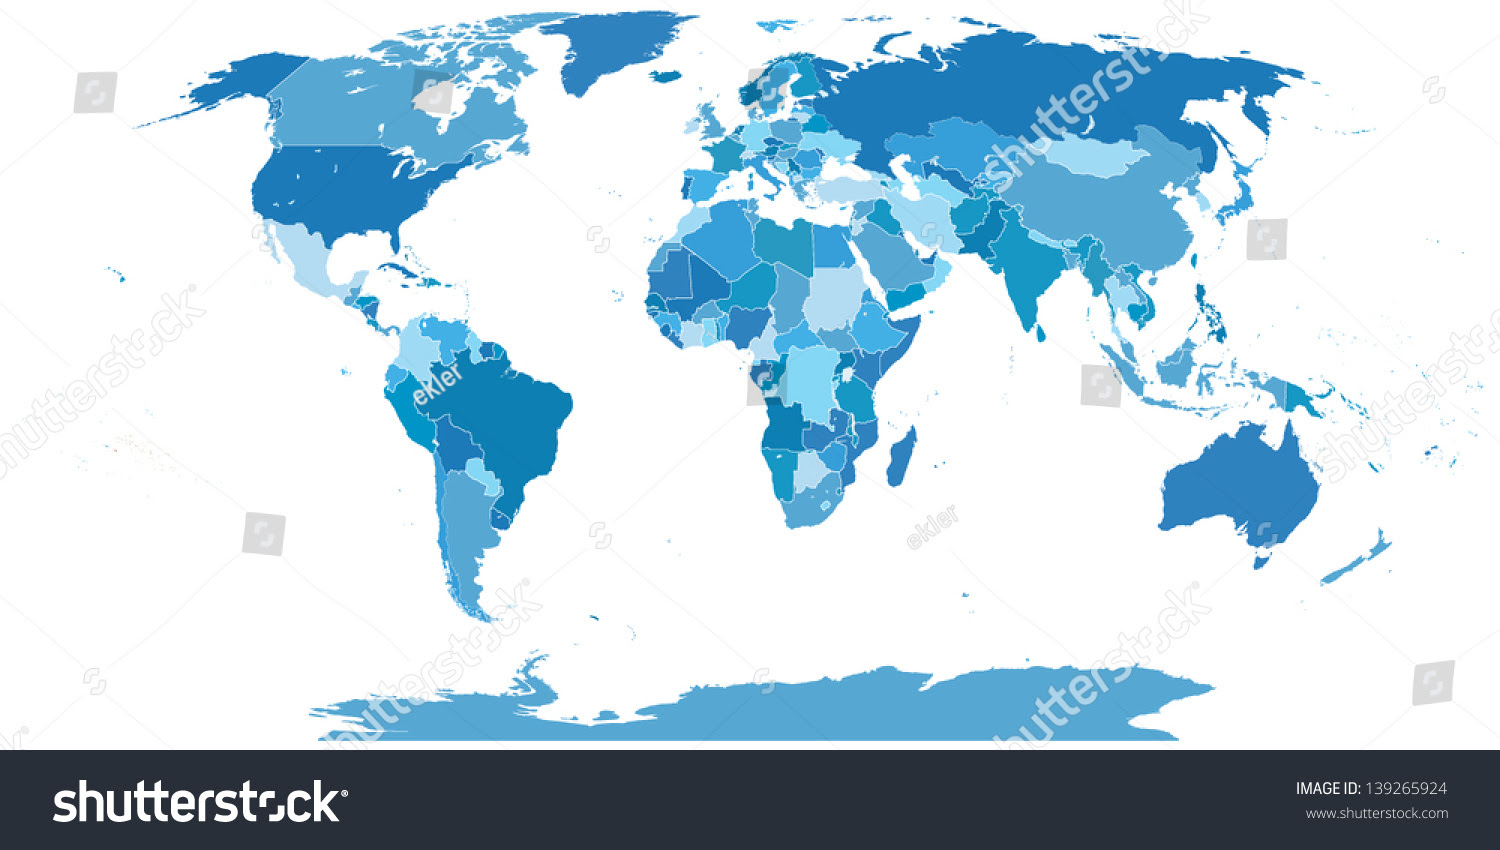 High Detail World Map Elements Separated Stock Vector 139265924 ...